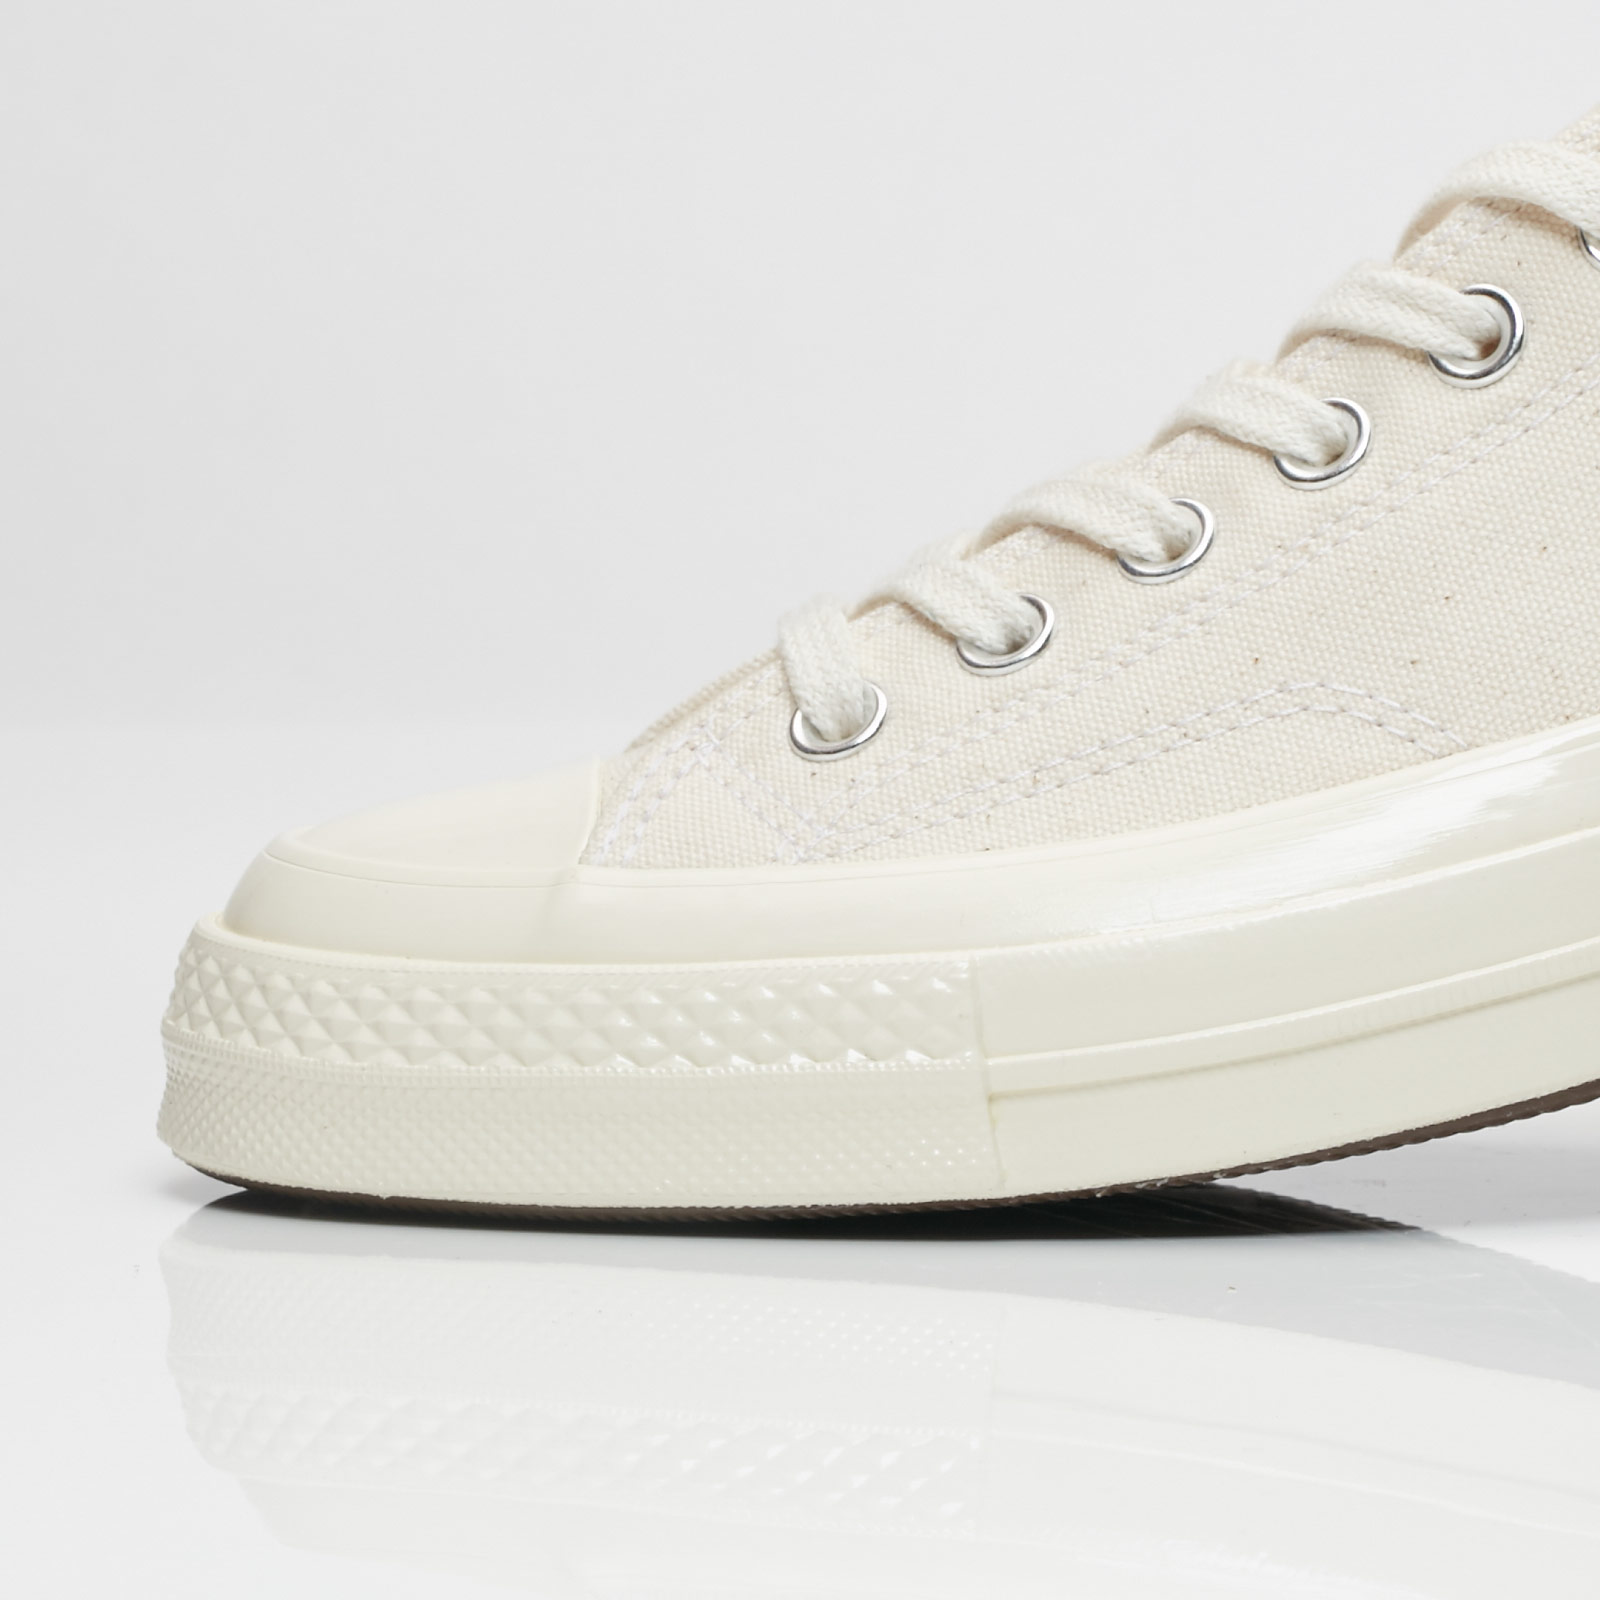 035a6e500dbf41 Converse All Star 70s Ox - 151230c - Sneakersnstuff